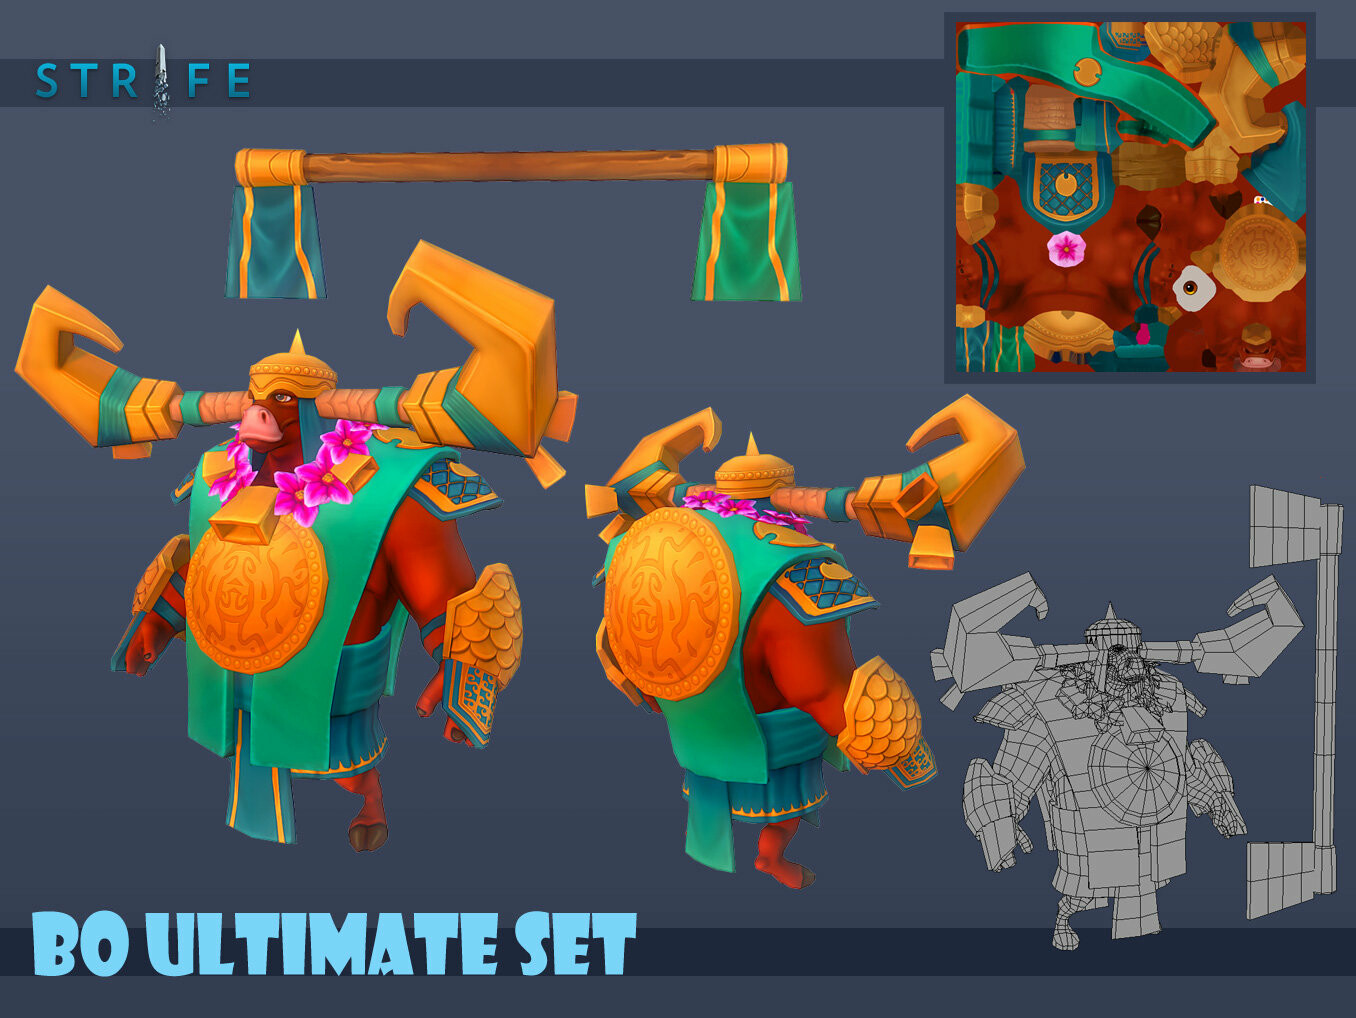 Bo Ultimate Set